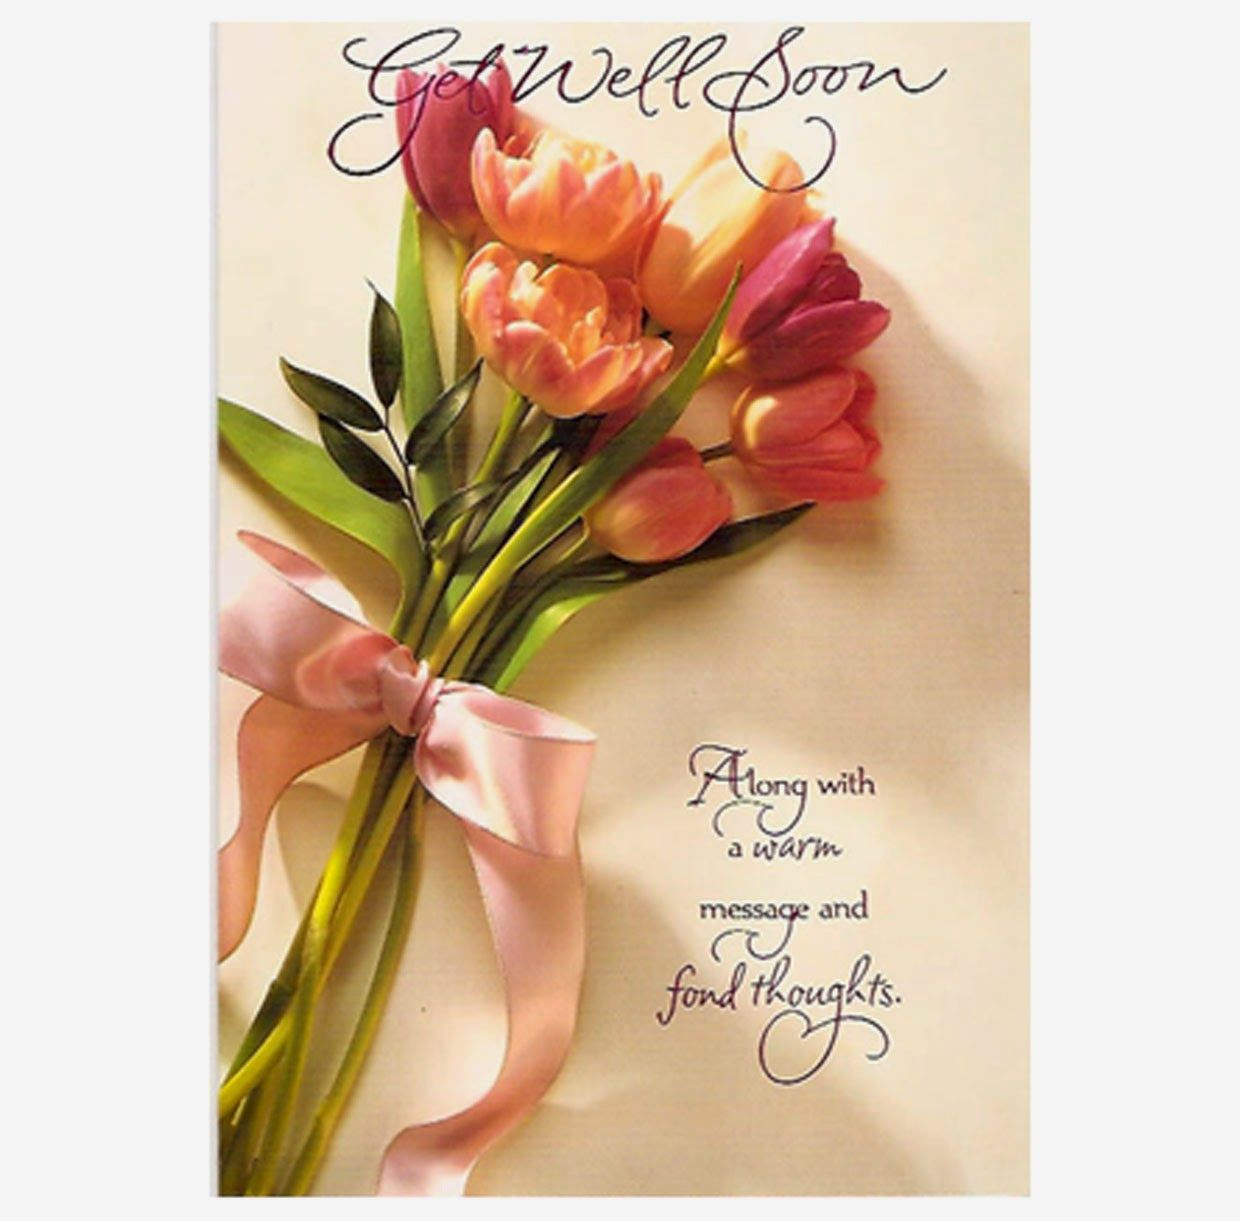 Im glad your surgery went well today free greetings from www explore get well soon greeting cards and more dhlflorist Images